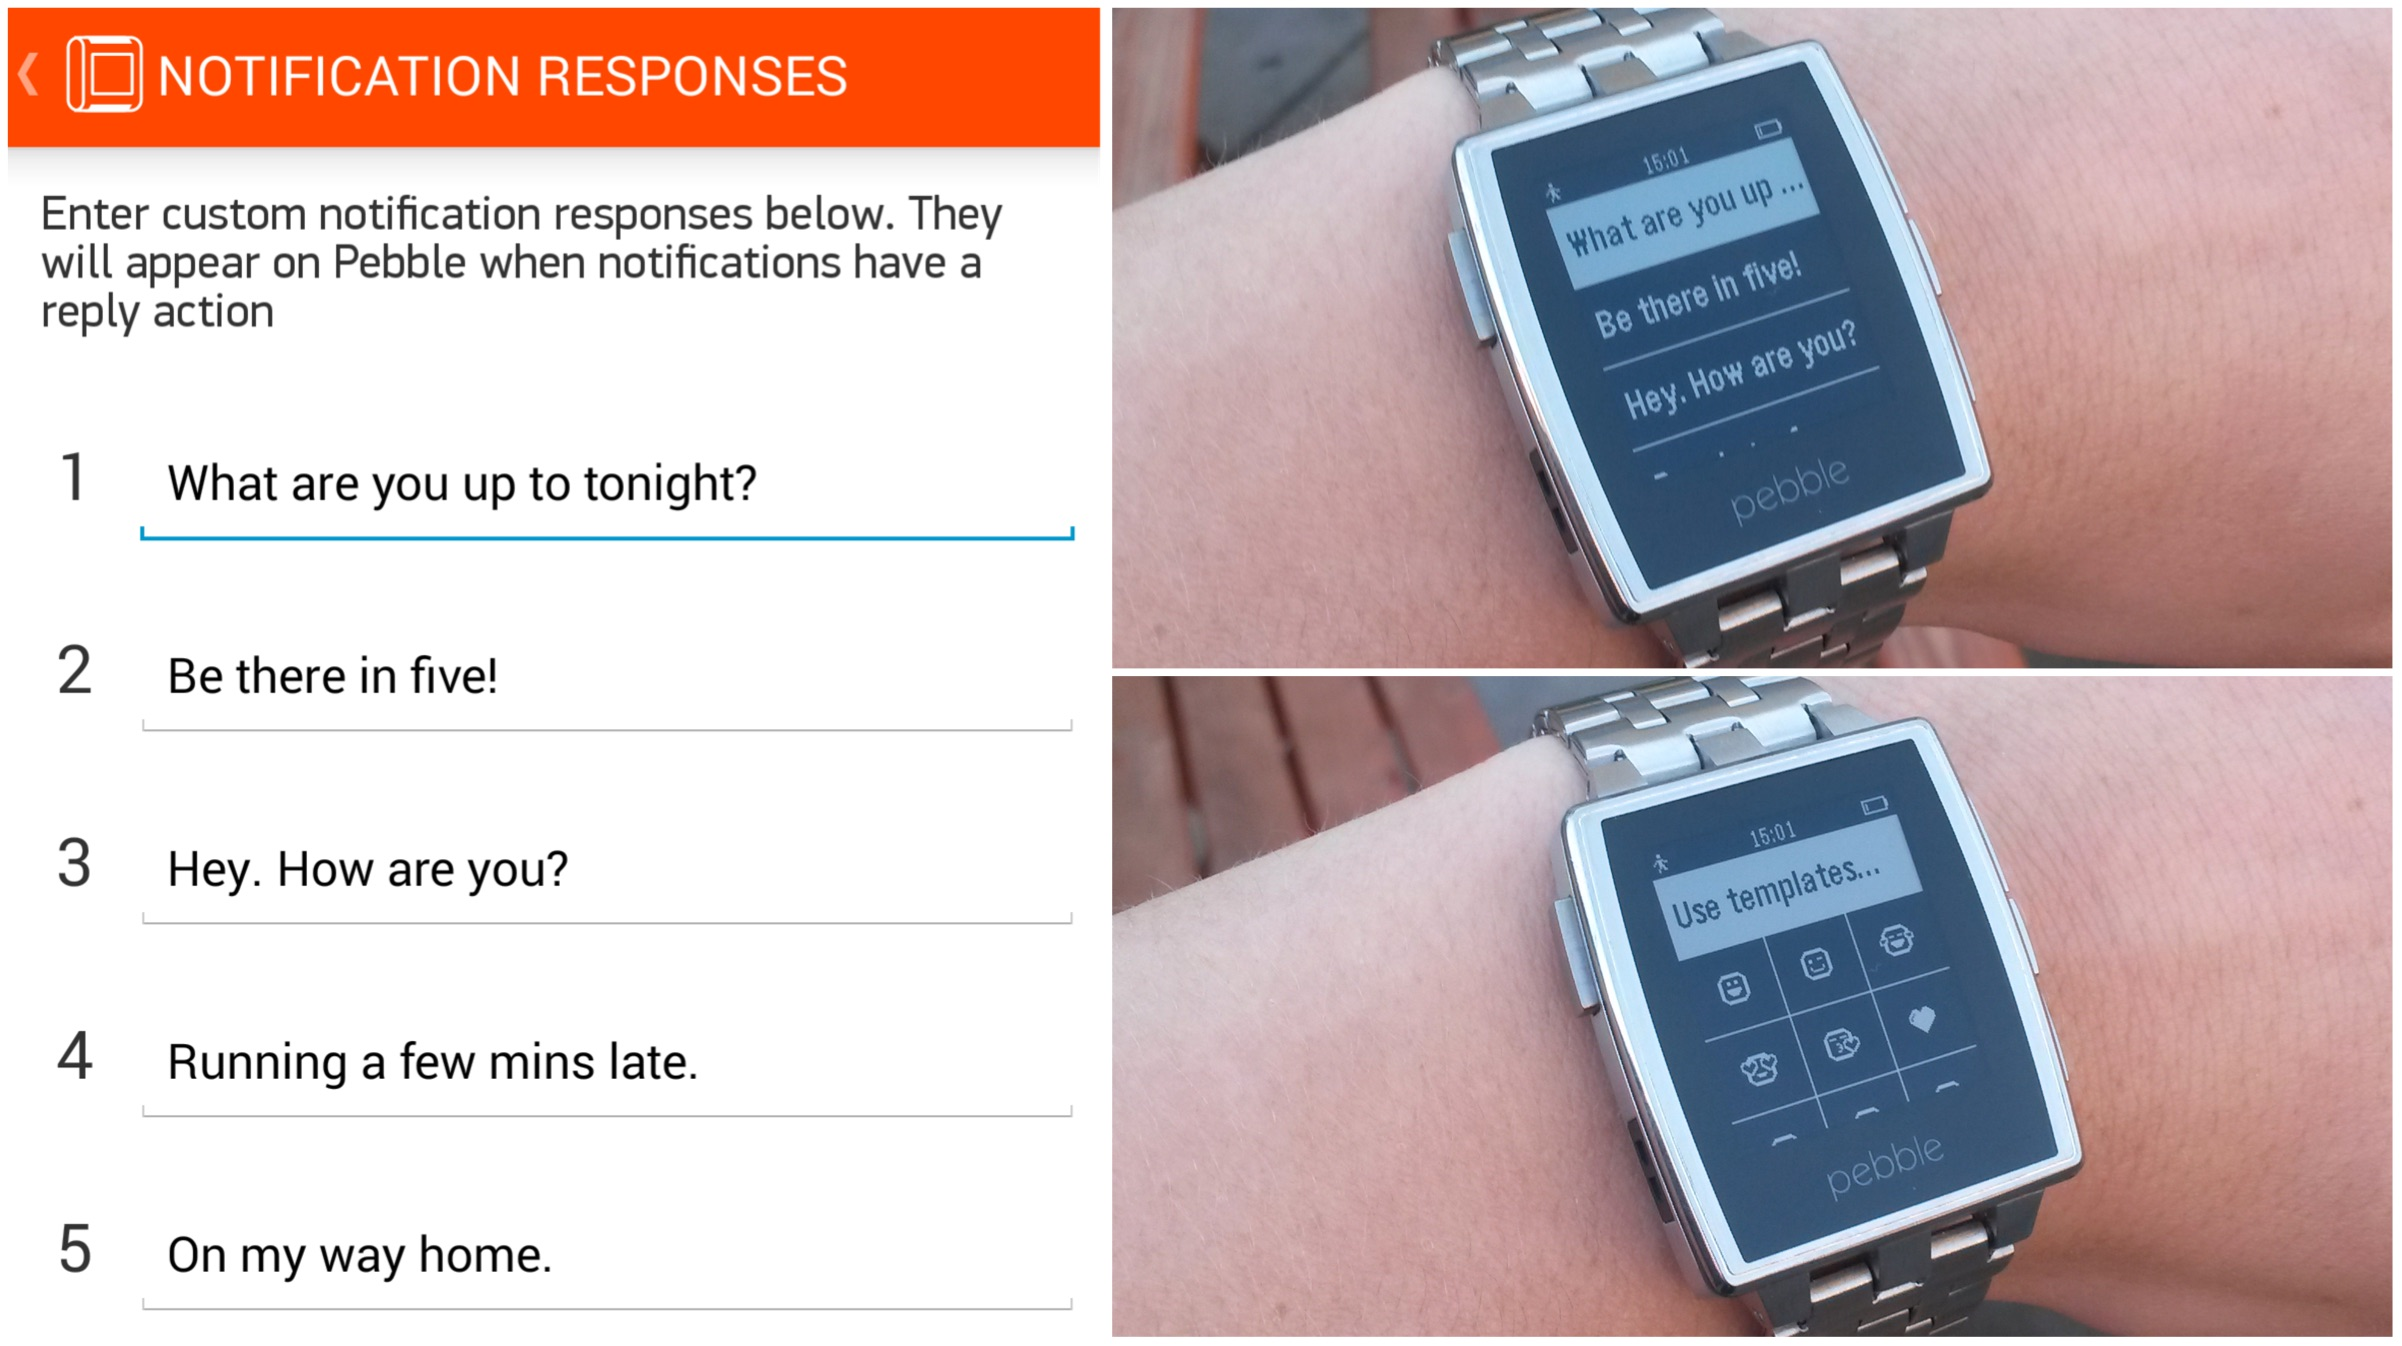 Pebble user-defined responses